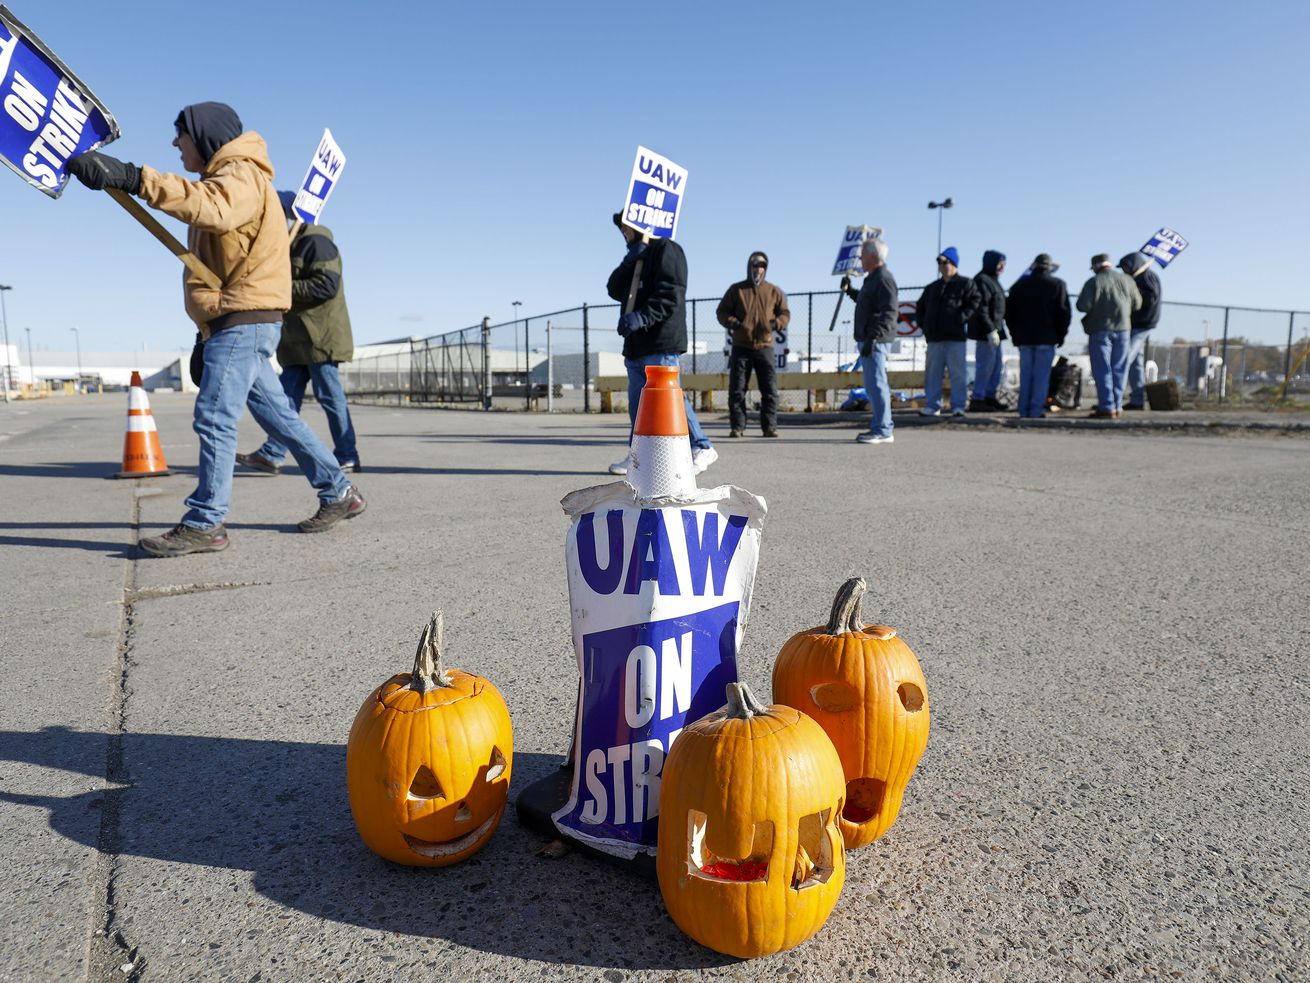 "A picket sign that reads, ""UAW on strike"" sits propped on the ground surrounded by three carved pumpkins. Strikers carrying signs are in the background."